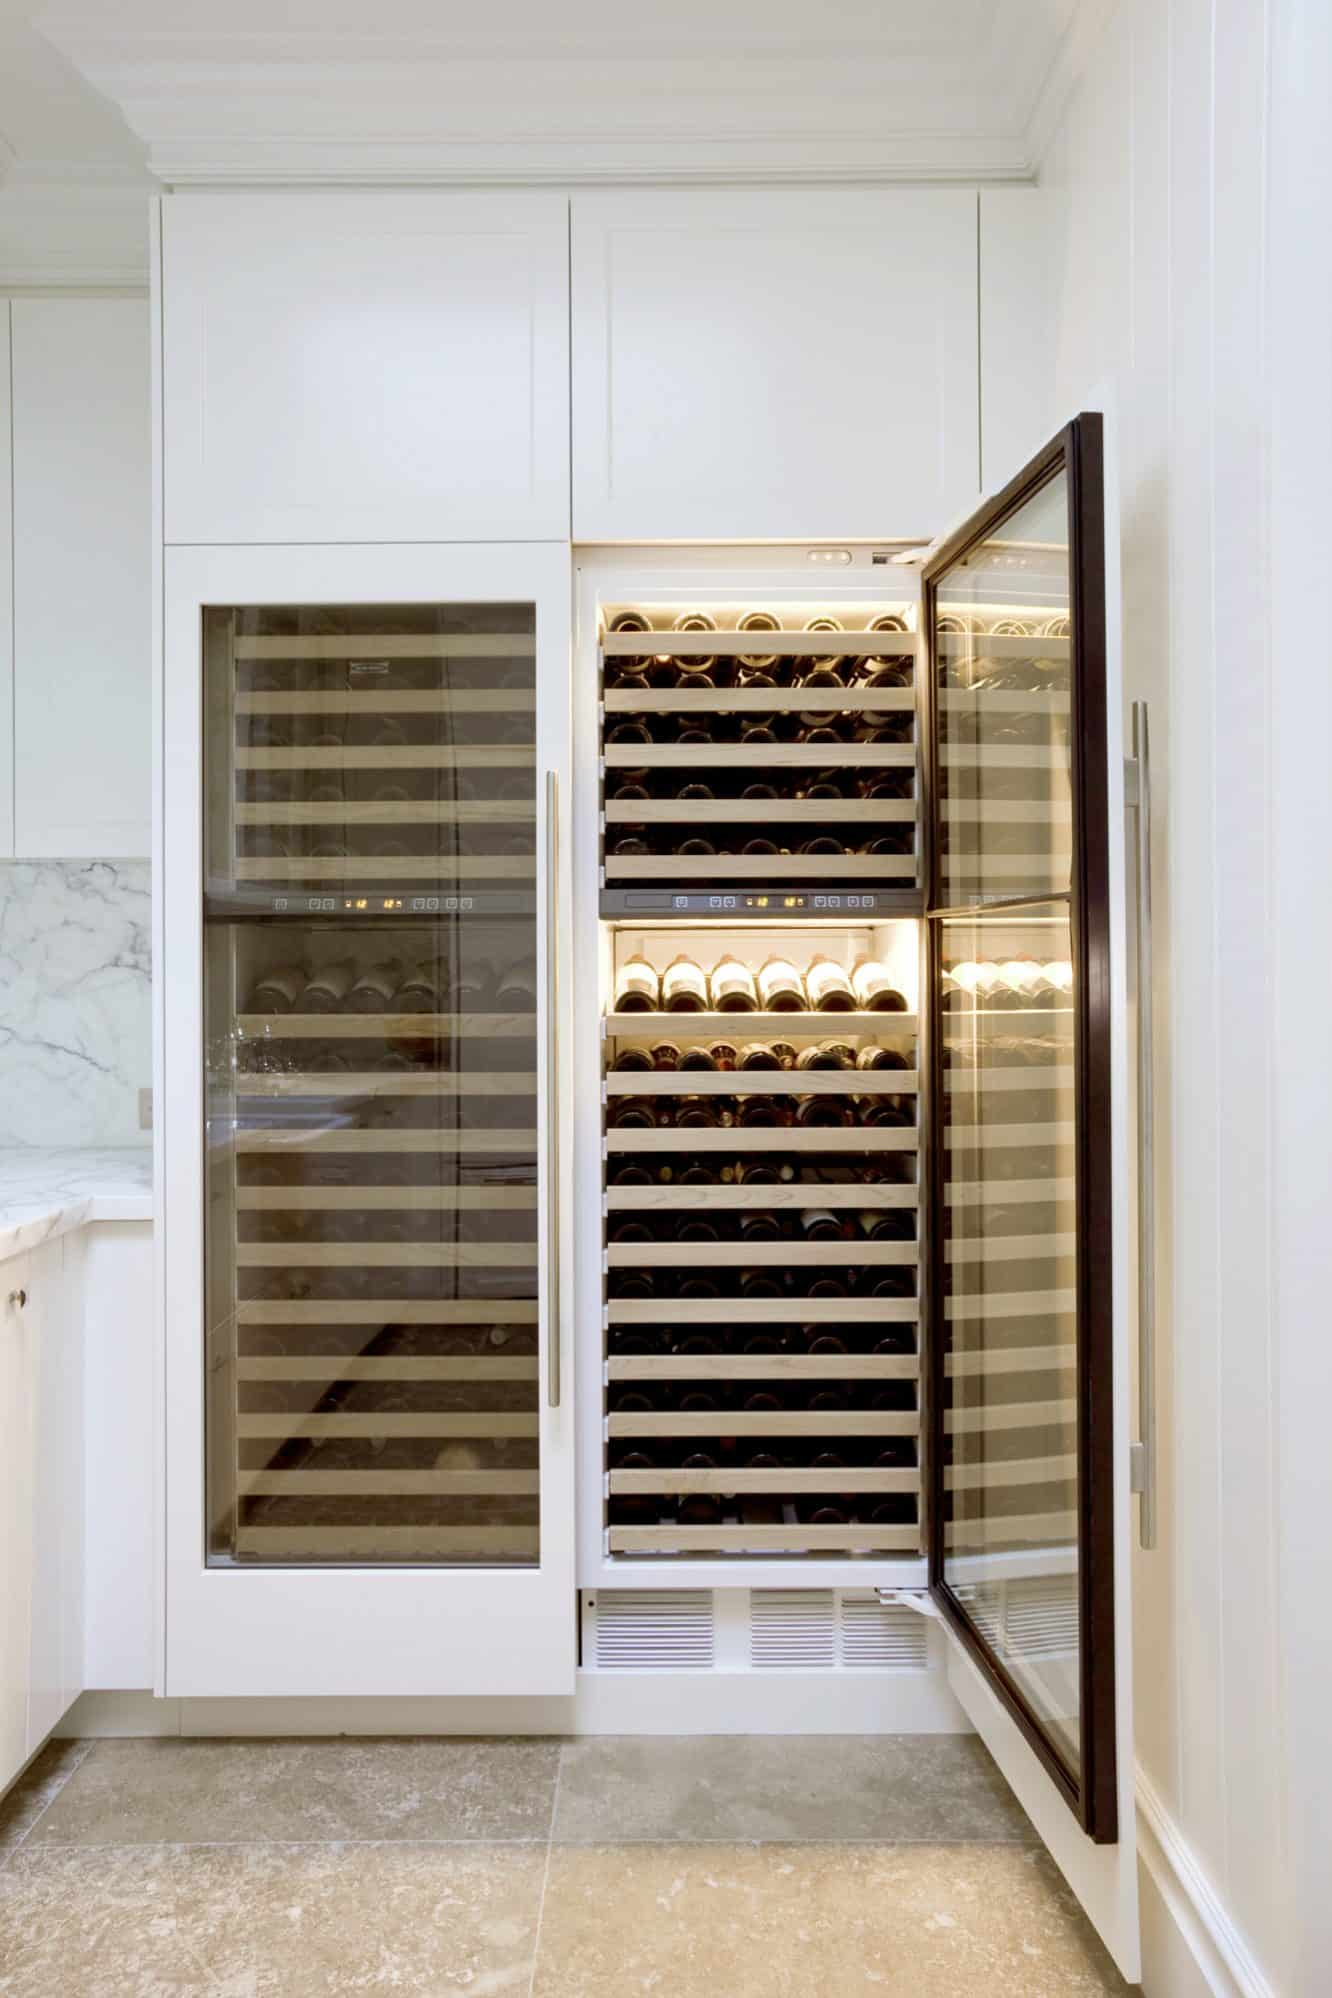 Two large Sub-Zero wine cabinets in a pigeon pair configuration